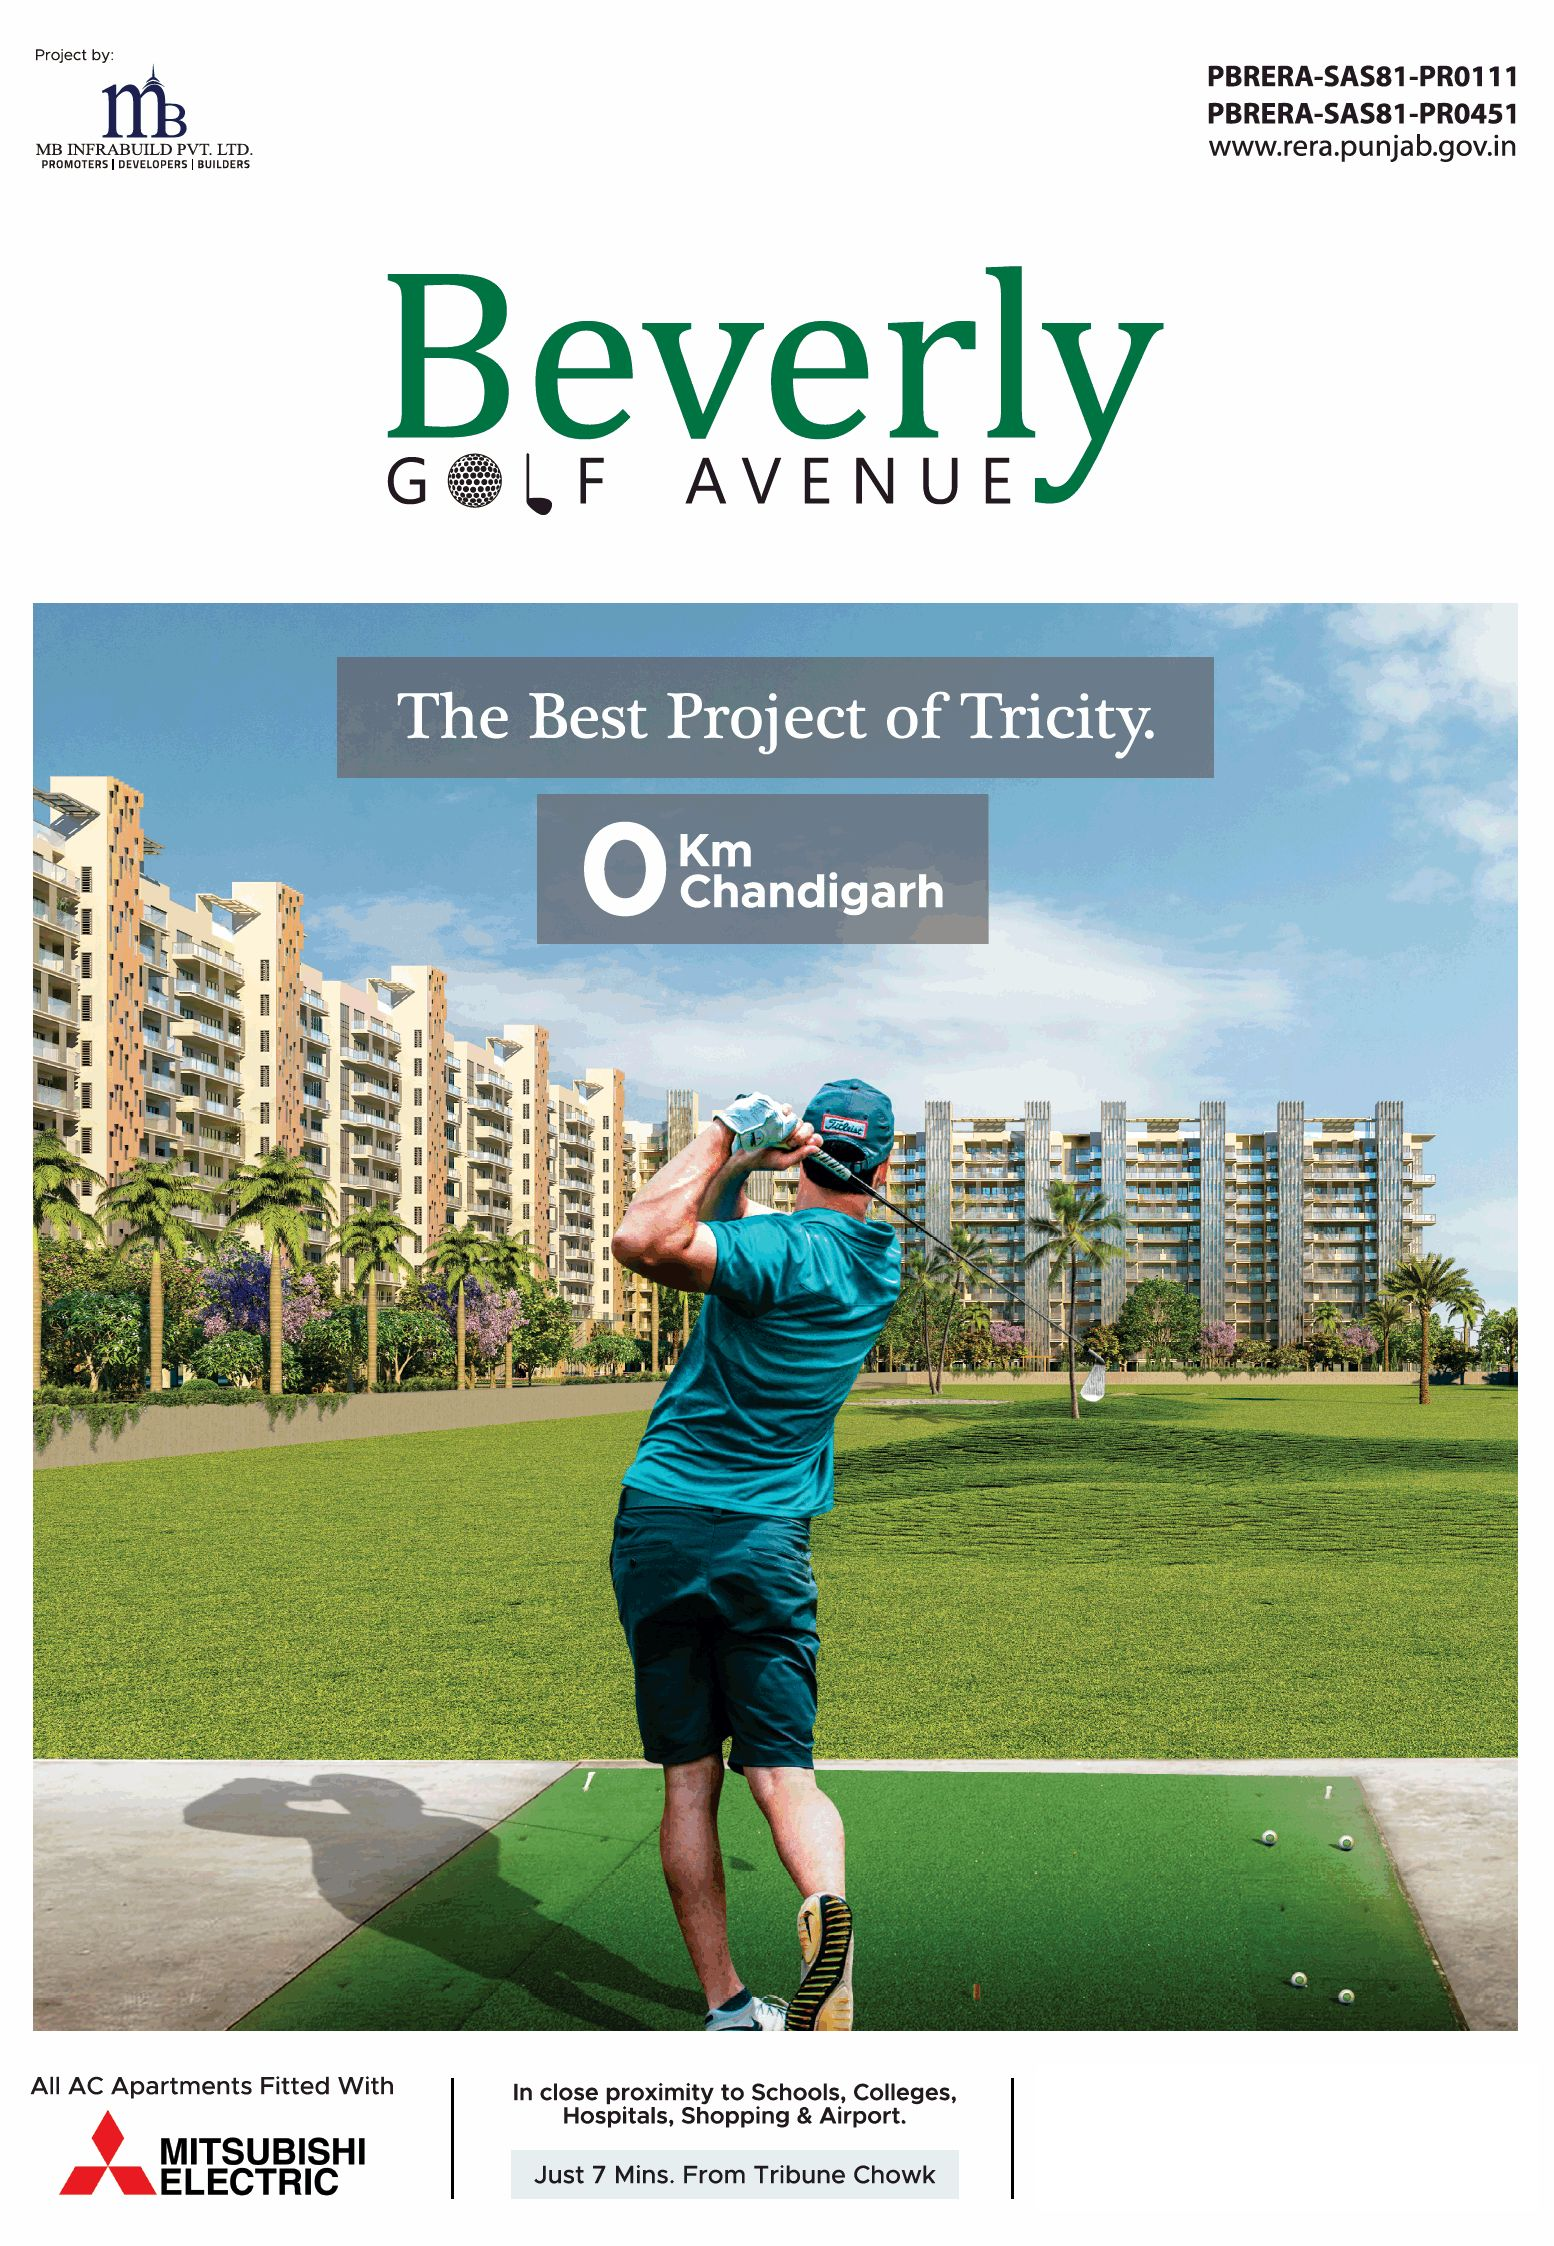 A landmark on the tricity skyline with stunning views at MB Beverly Golf Avenue Mohali Photo